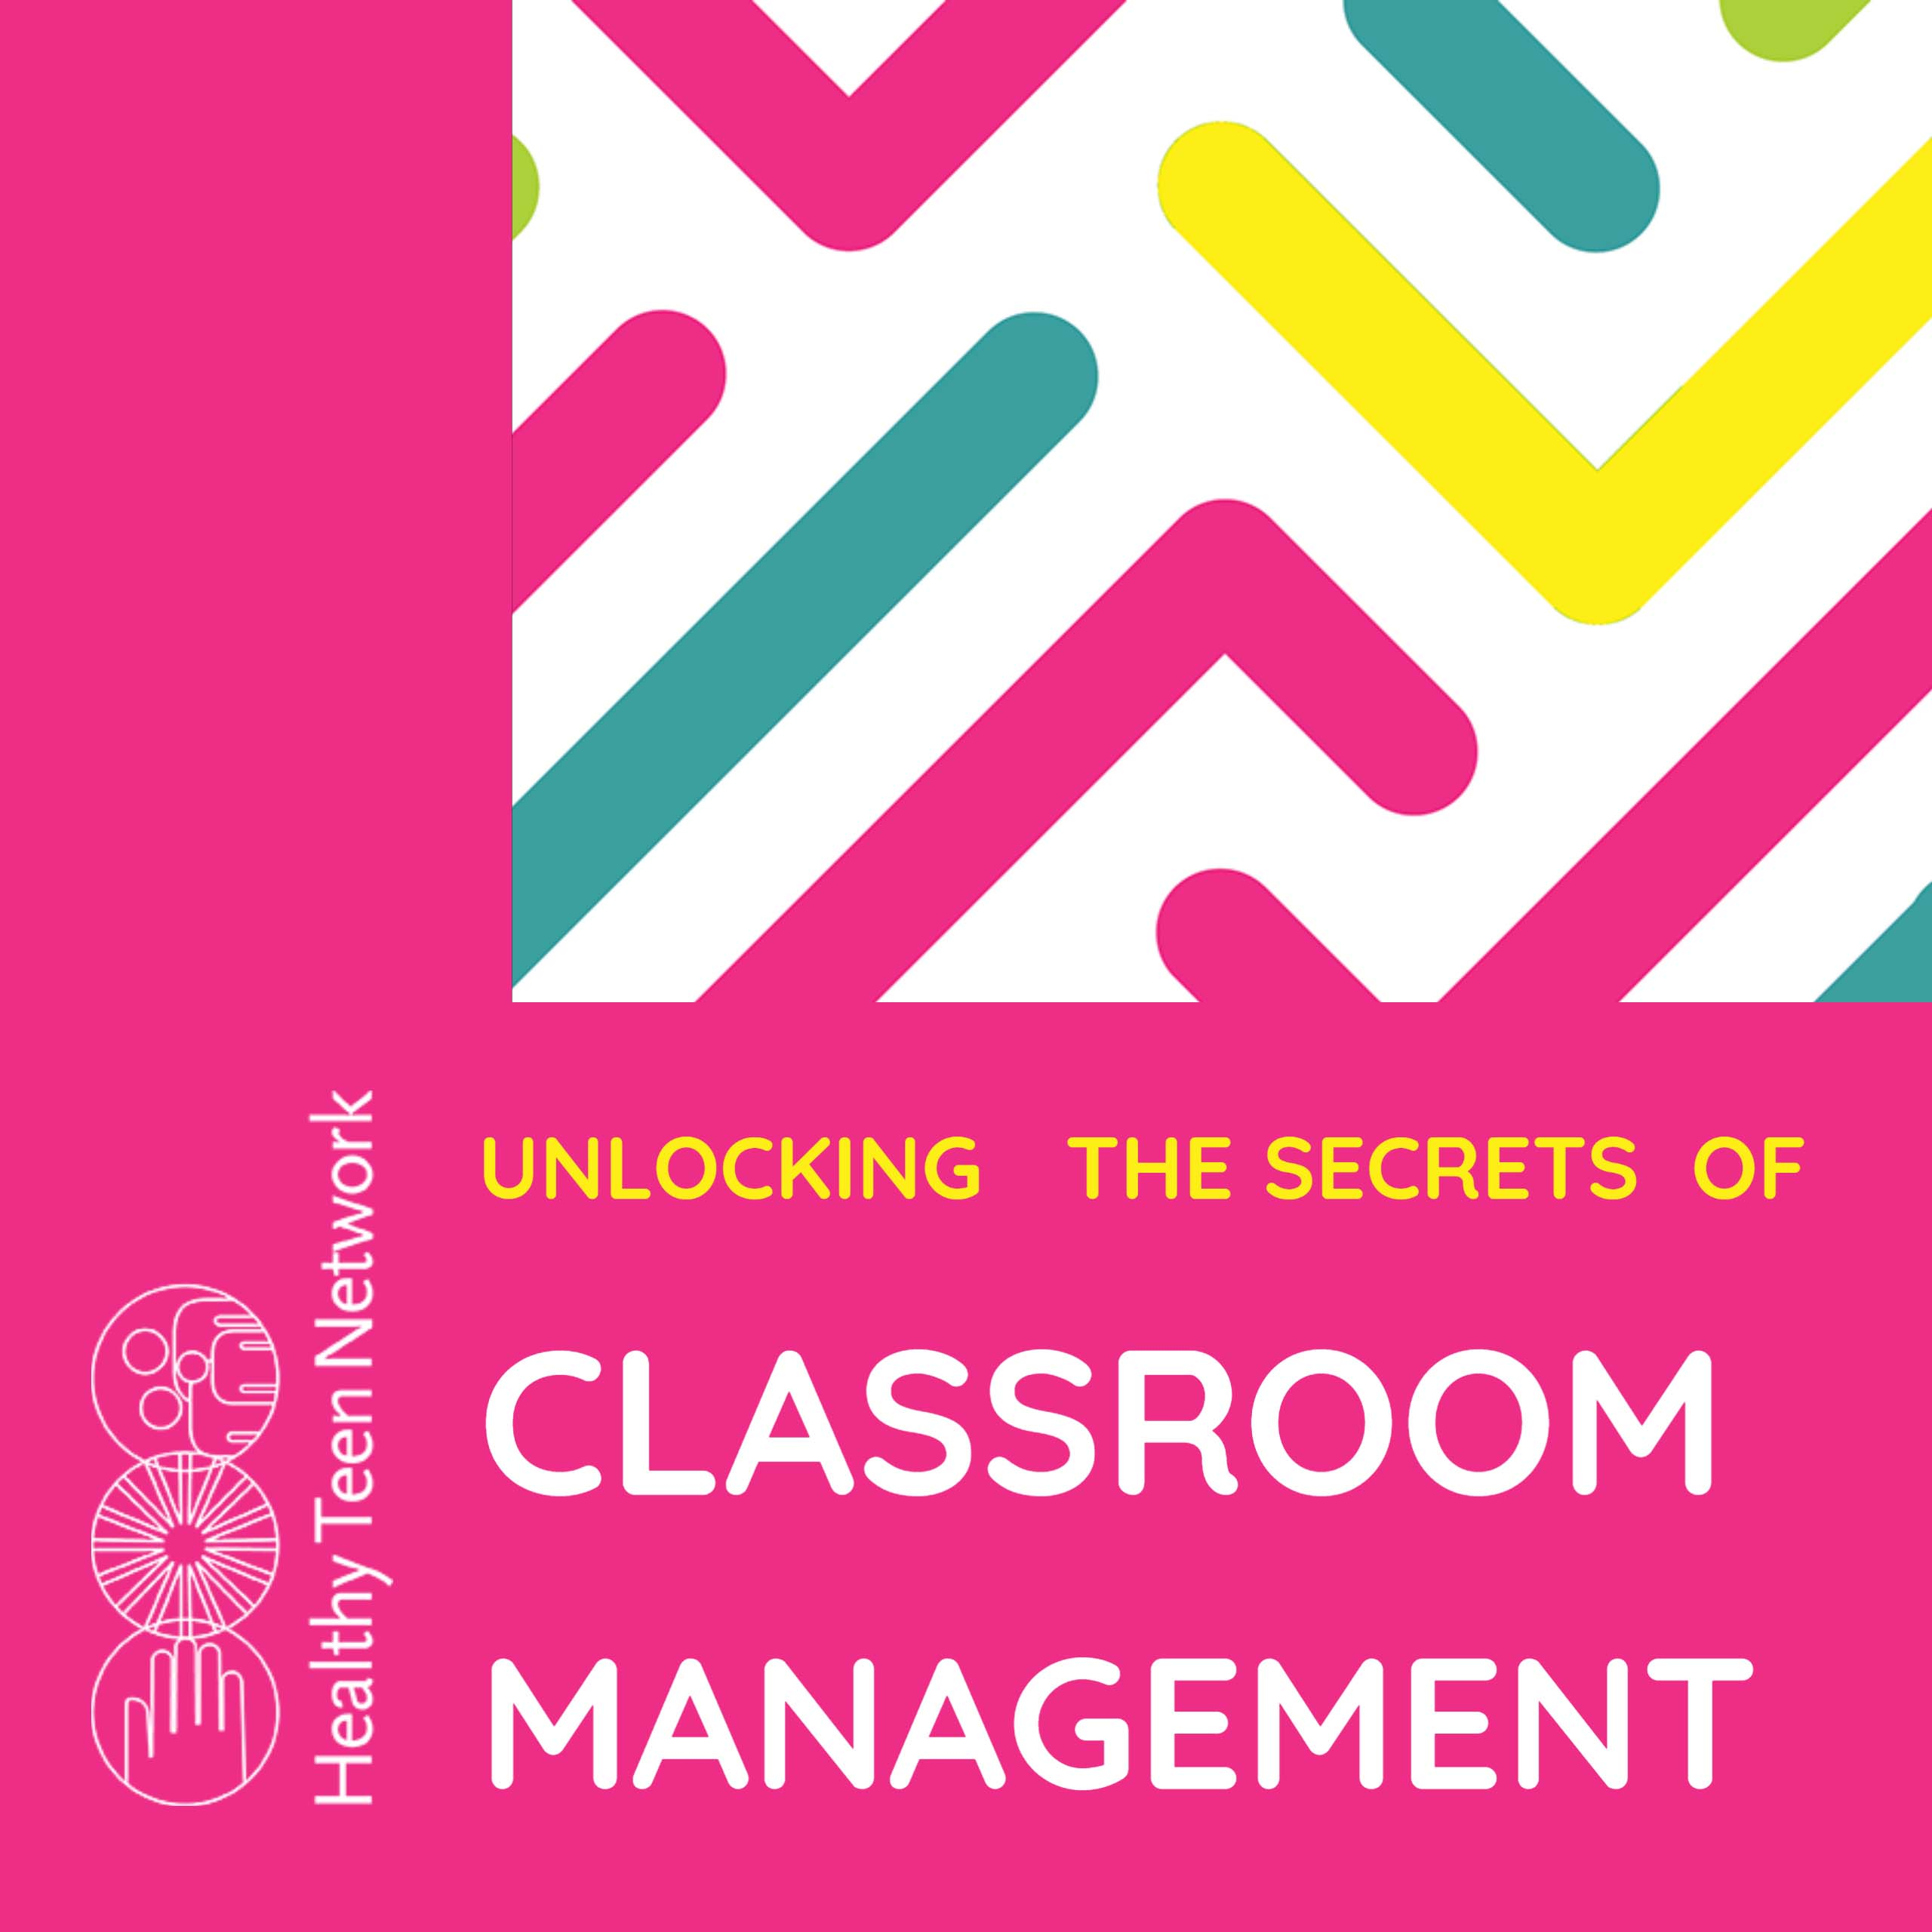 Cover image of elearning module